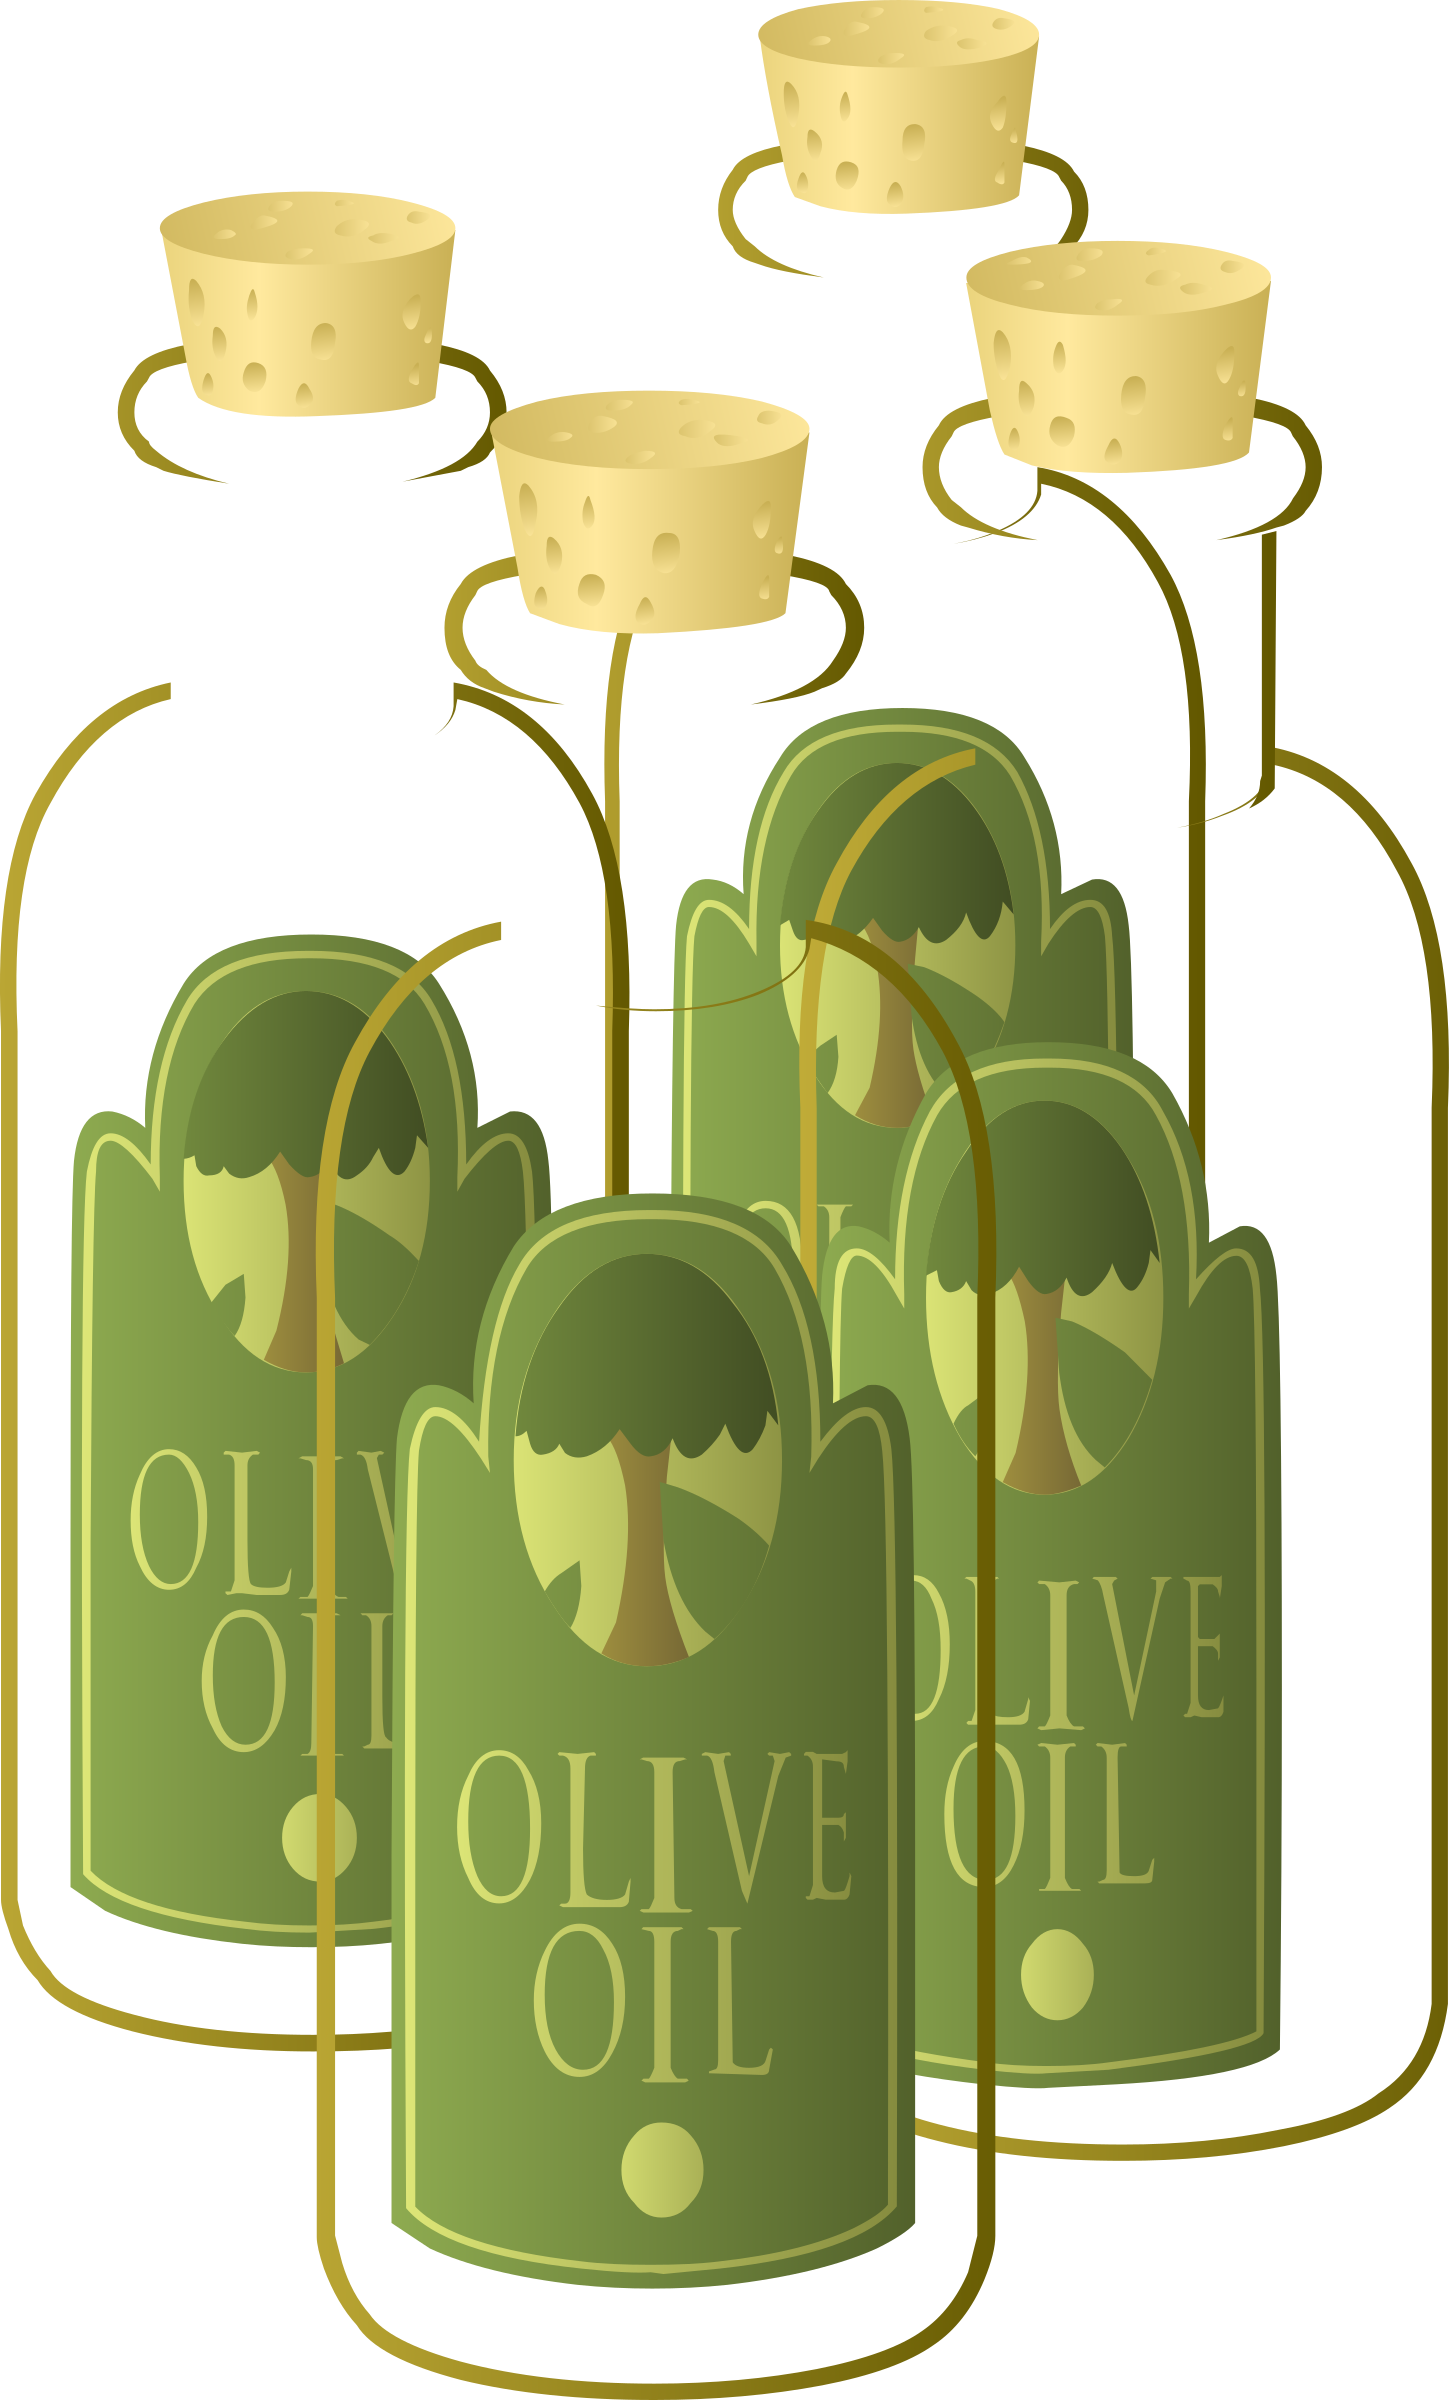 Food Olive Oil by glitch